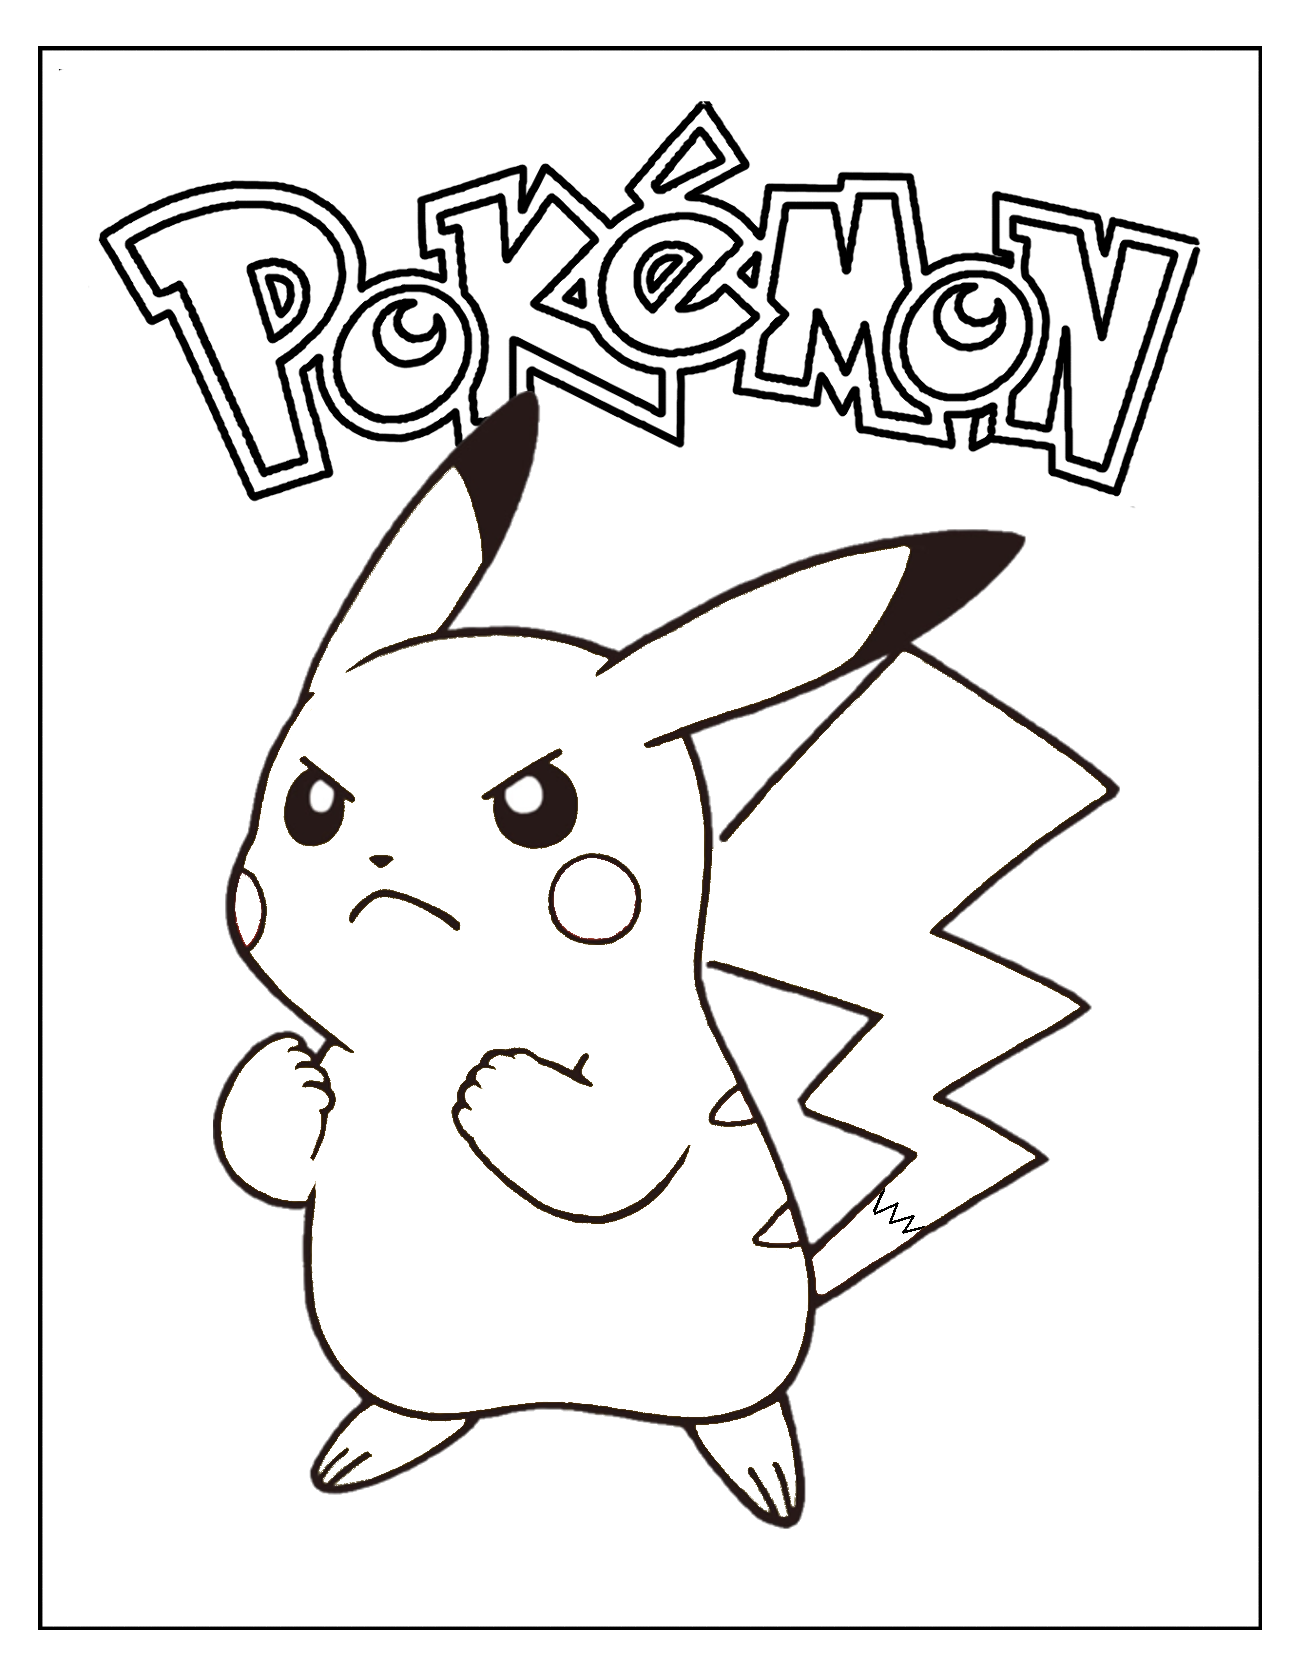 pikachu coloring page | coloring pages | Pinterest | Easter and Creative